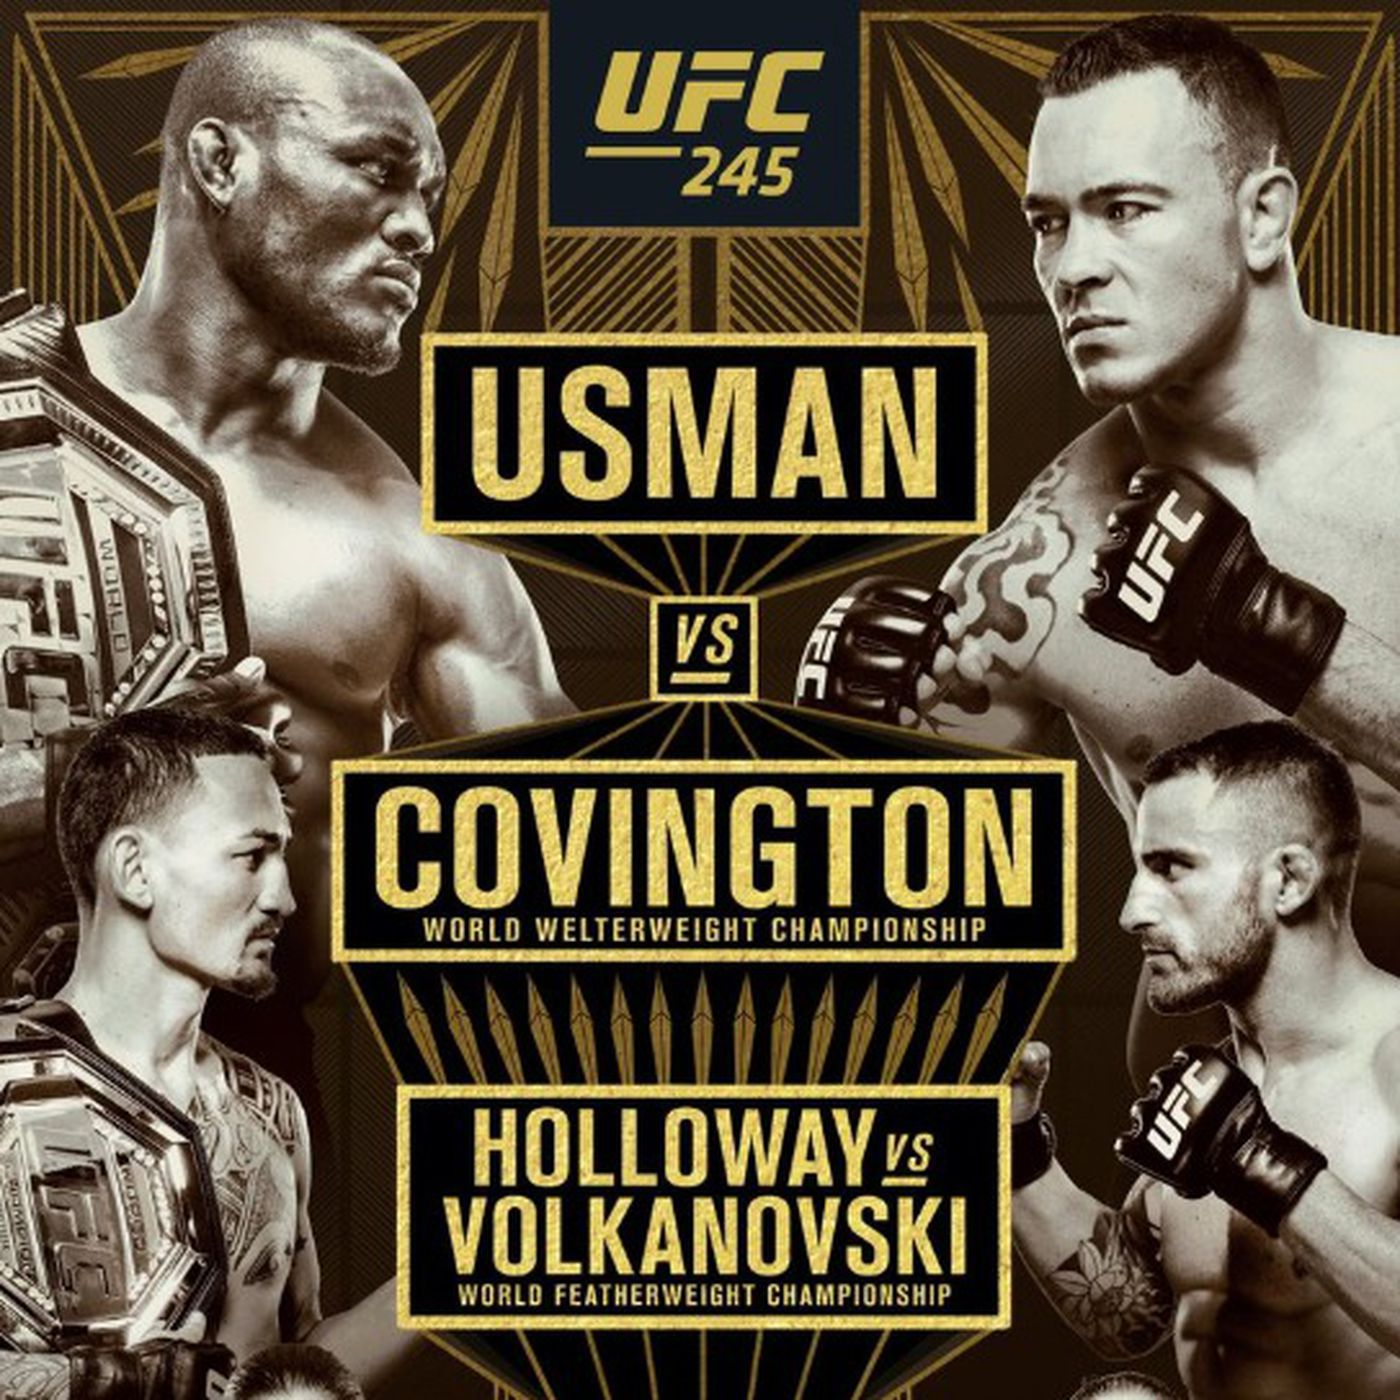 Watch Ufc 245 Kamaru Usman Vs Colby Covington Live Stream